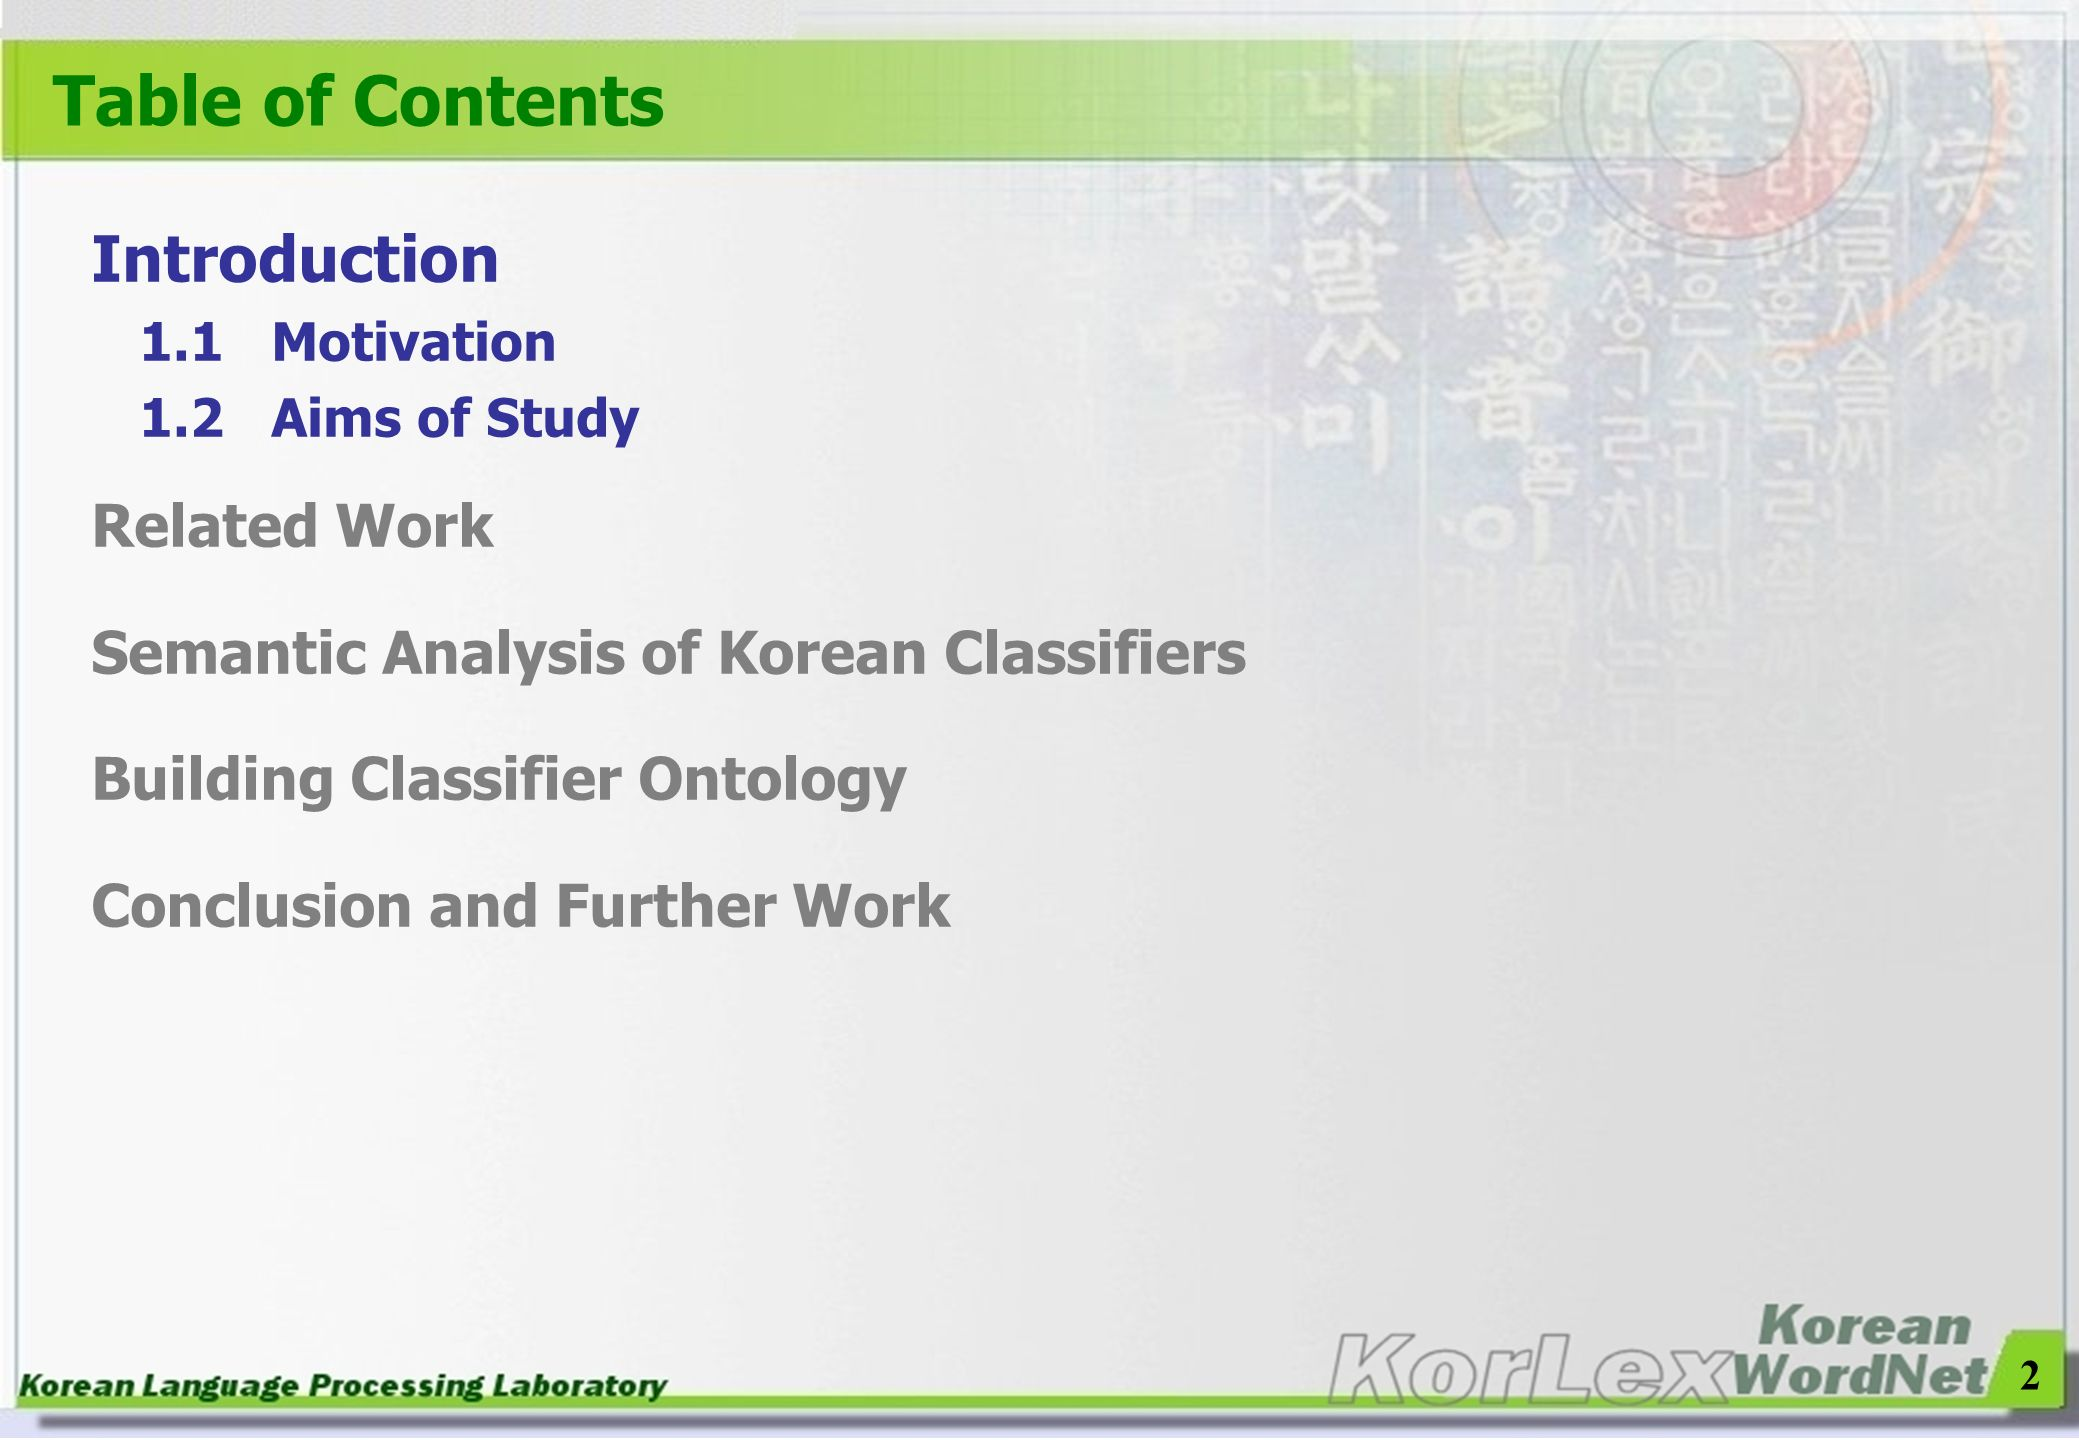 2 Table of Contents Introduction 1.1 Motivation 1.2 Aims of Study Related Work Semantic Analysis of Korean Classifiers Building Classifier Ontology Co